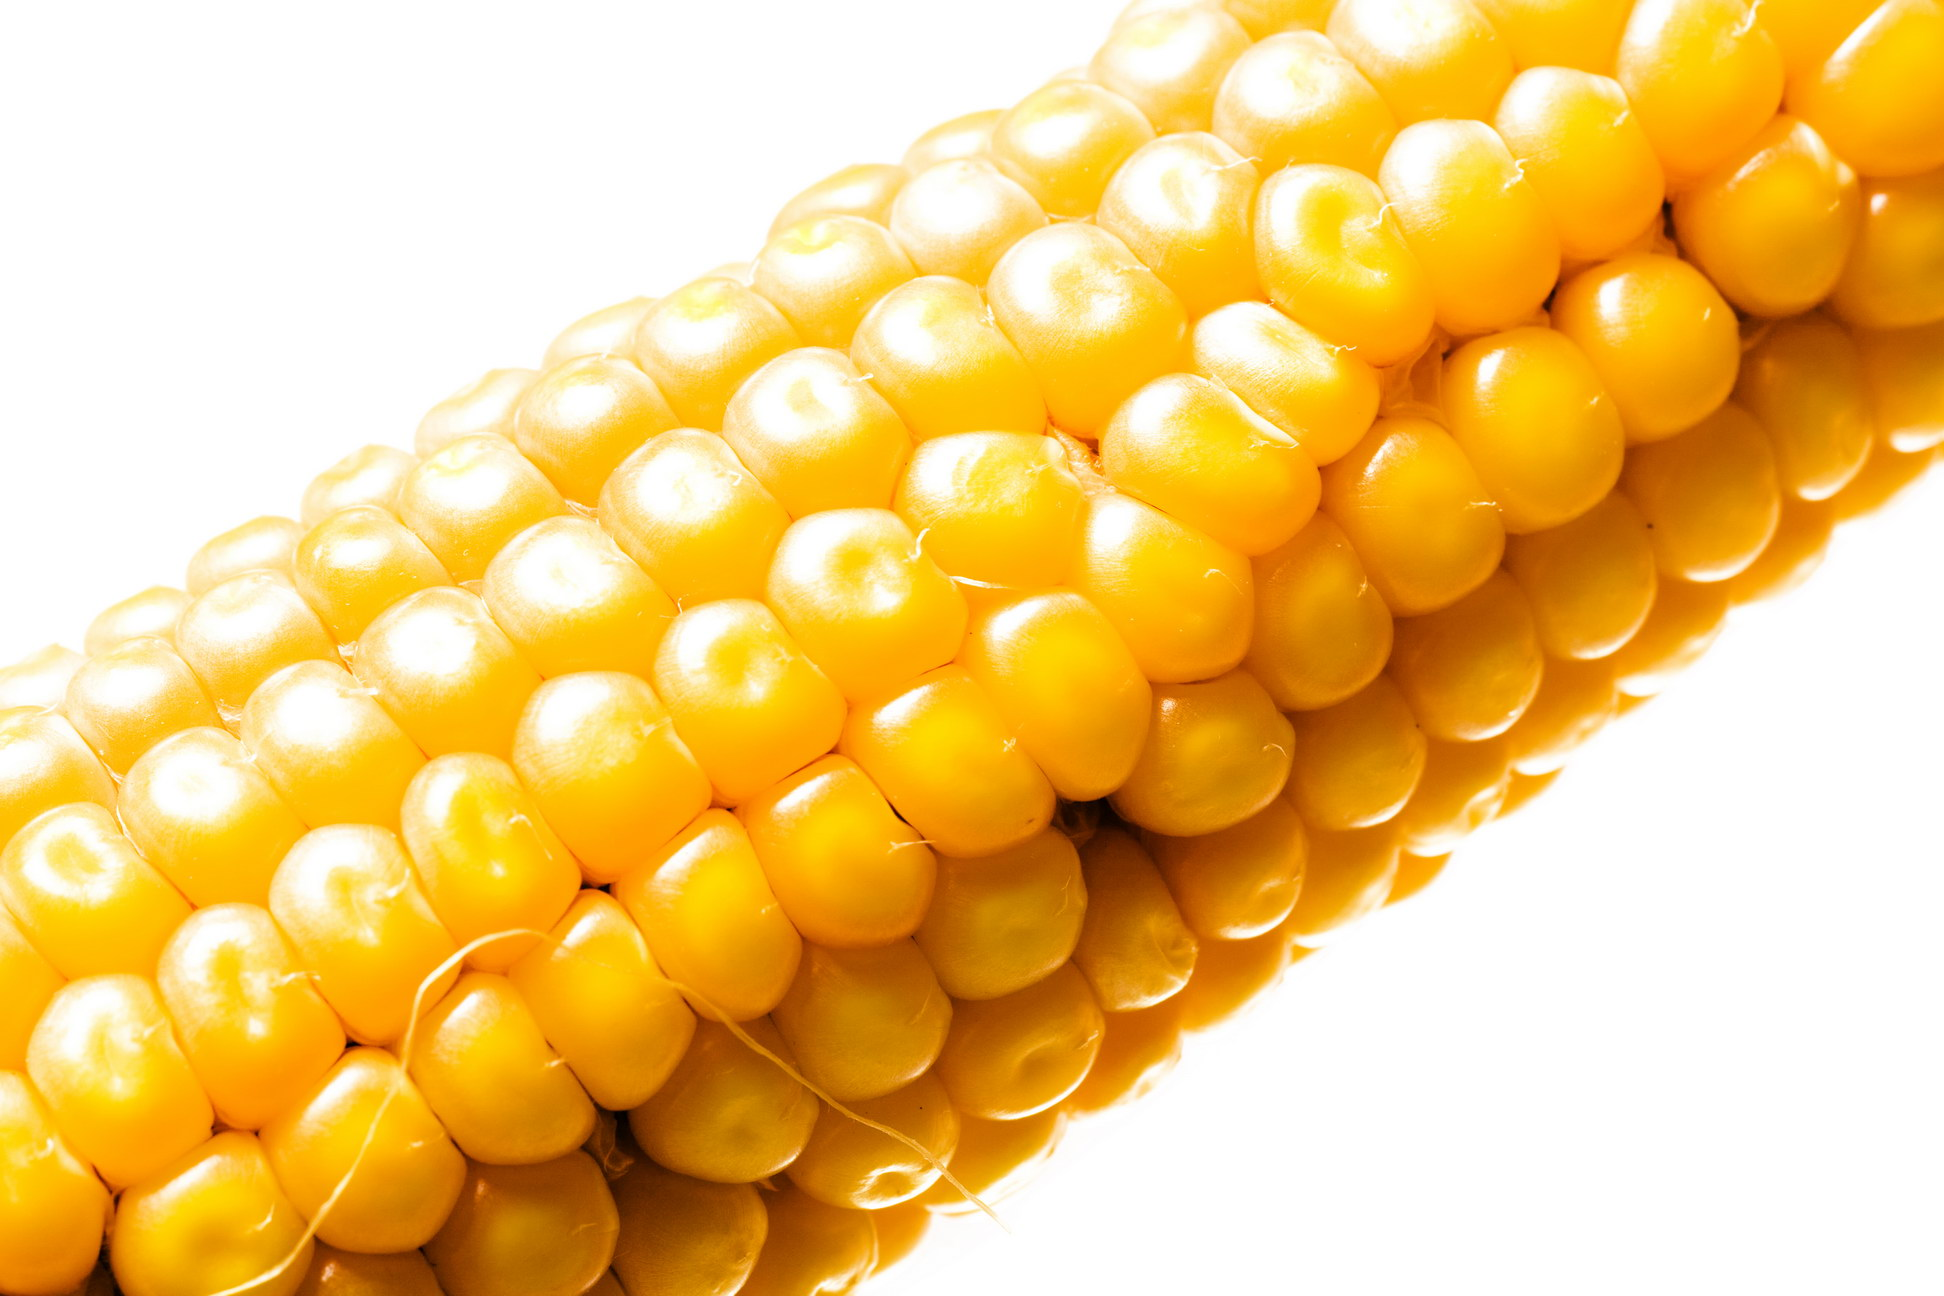 Corn, Agriculture, Macro, Maize, Meals, HQ Photo